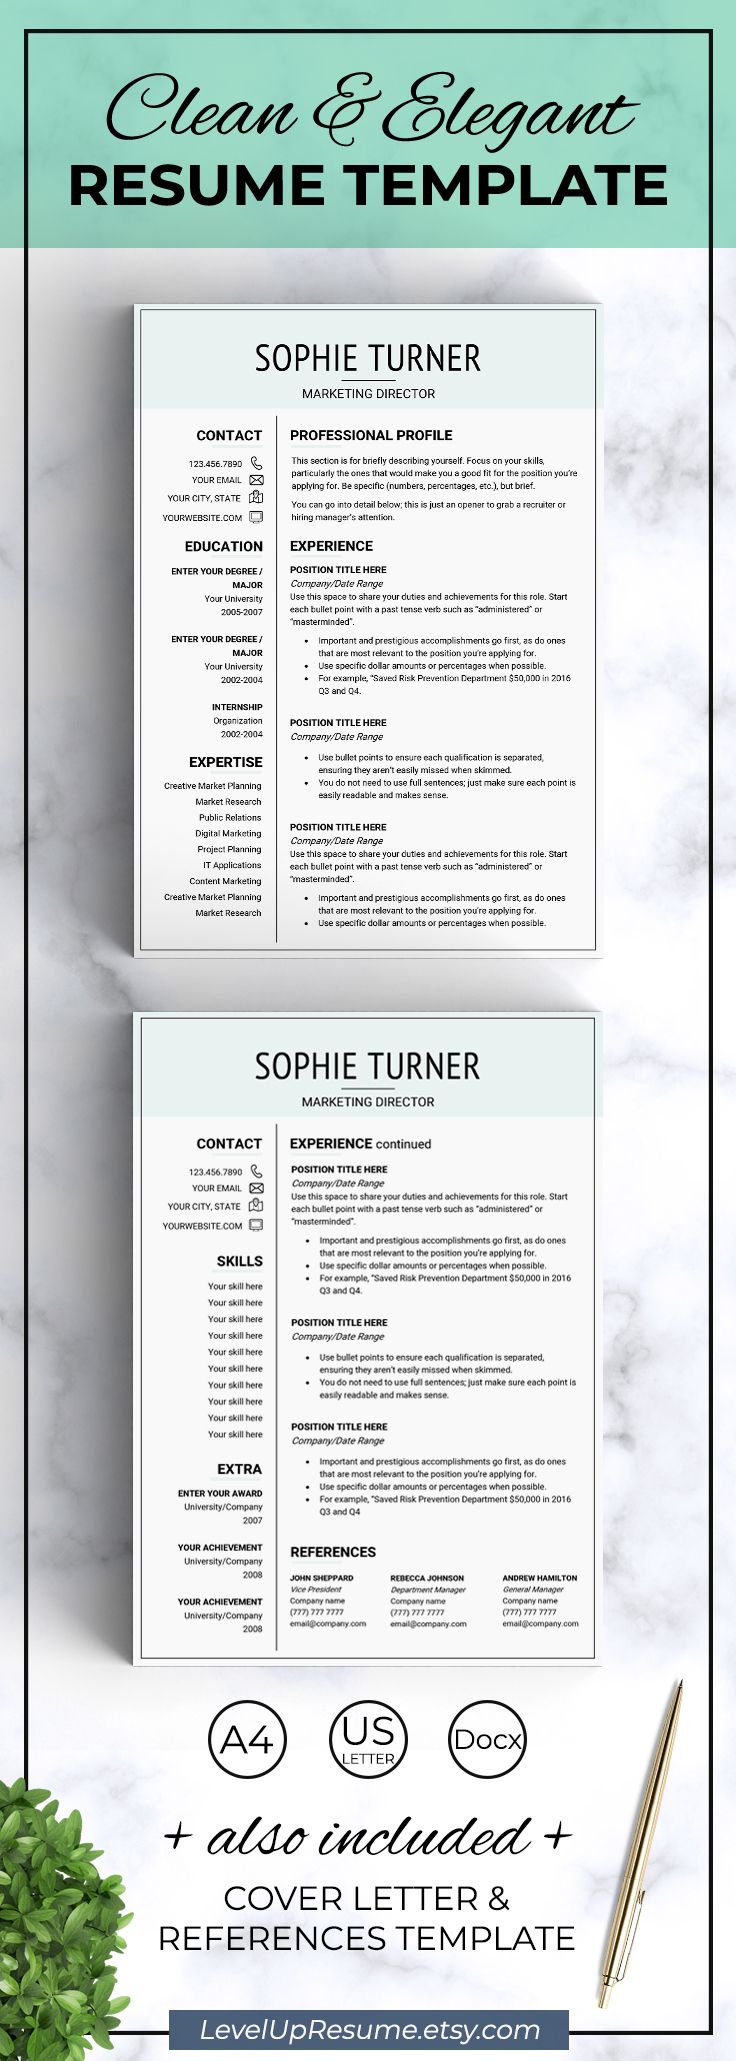 Modern Resume Template Resume Design Career Advice Job Search